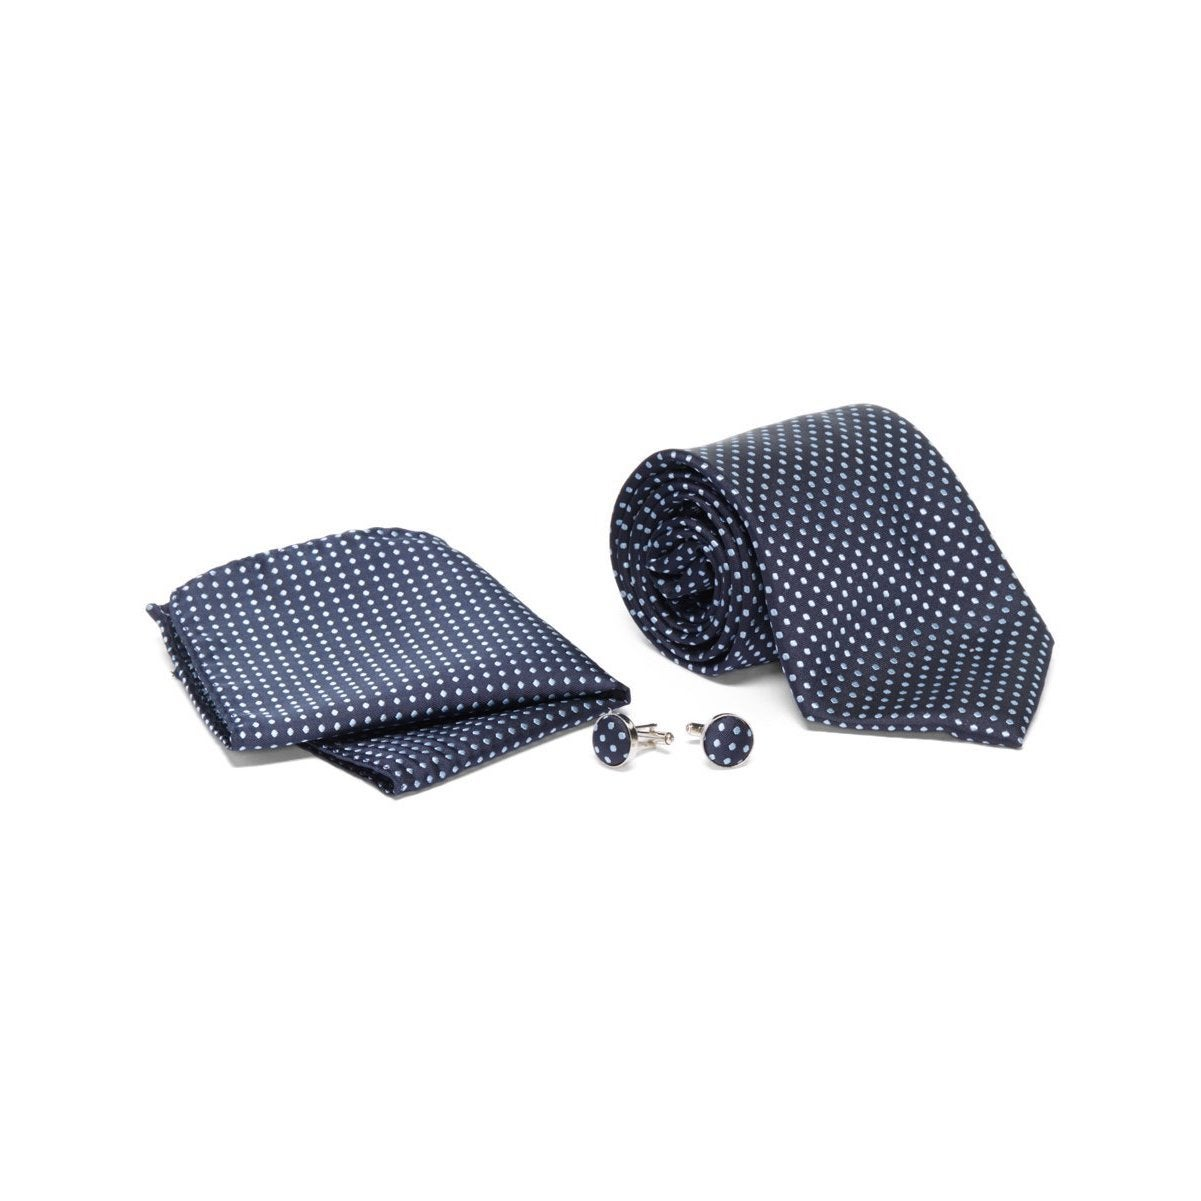 40273ba0ecff Men's Tie with Matching Handkerchief and Hand Cufflinks-Silver Patterned on  Black